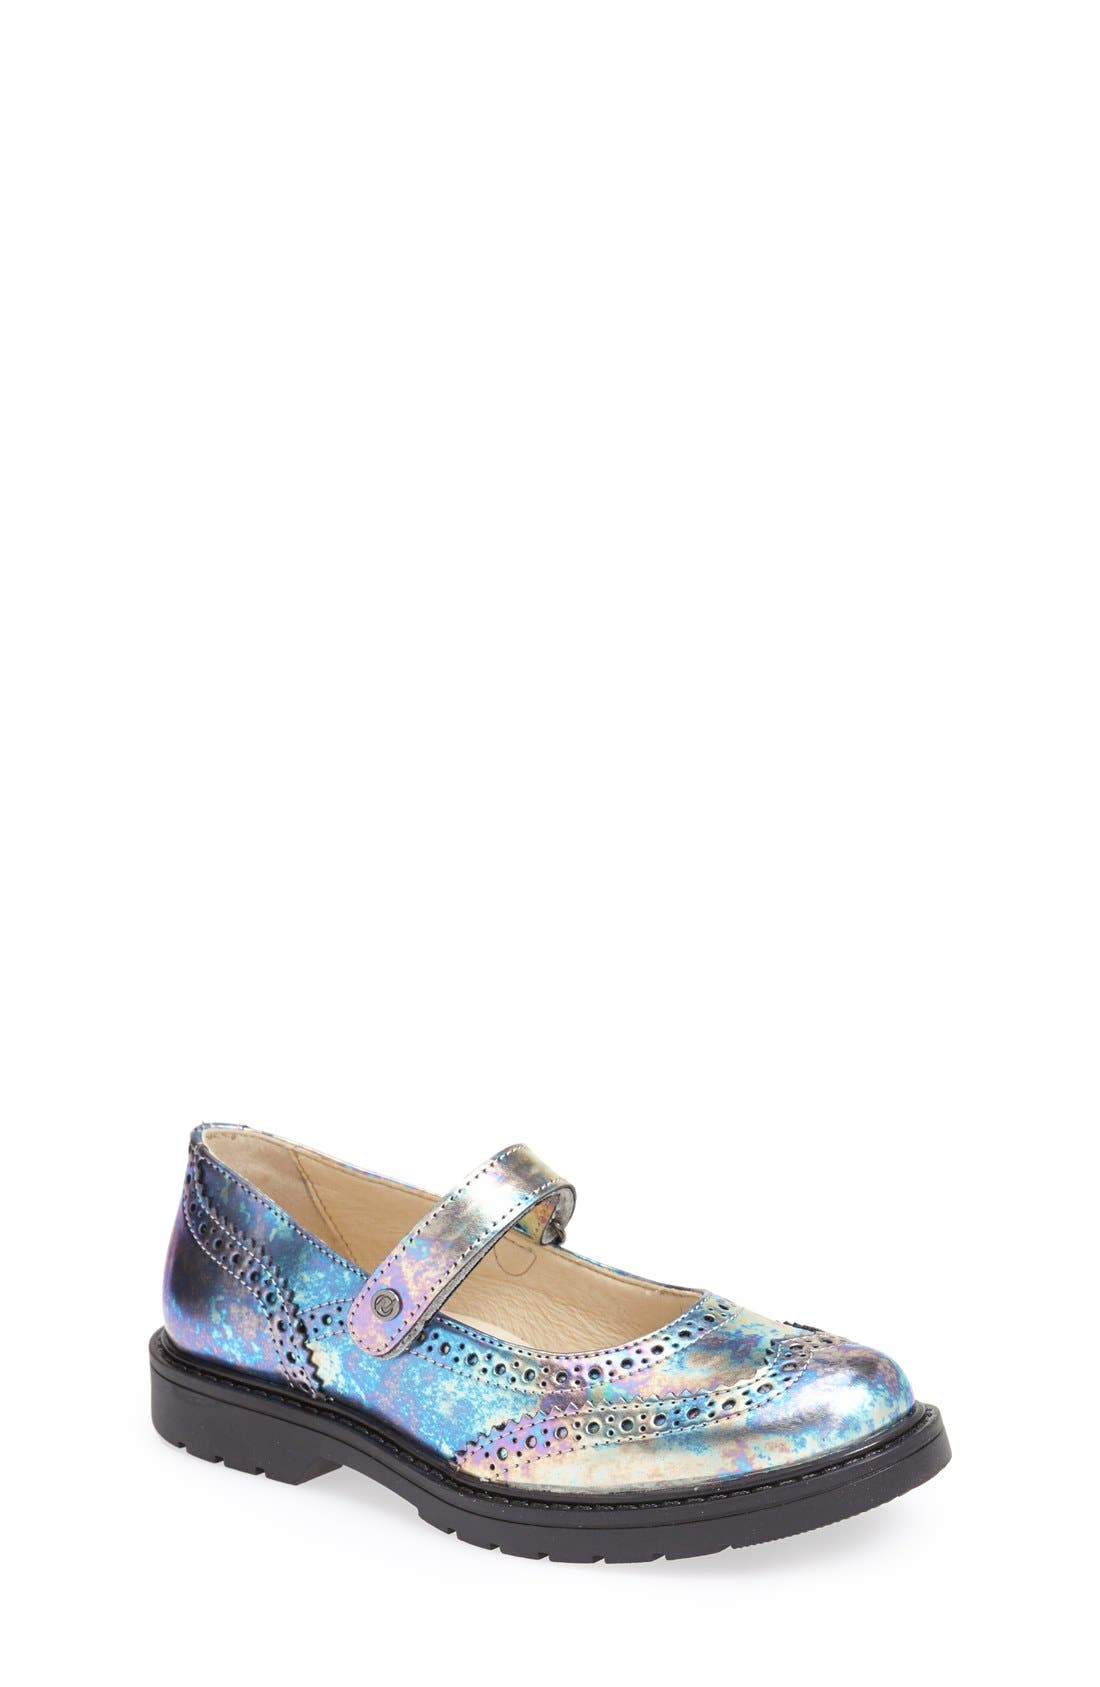 '4833' Leather Mary Jane Flat,                         Main,                         color, 040